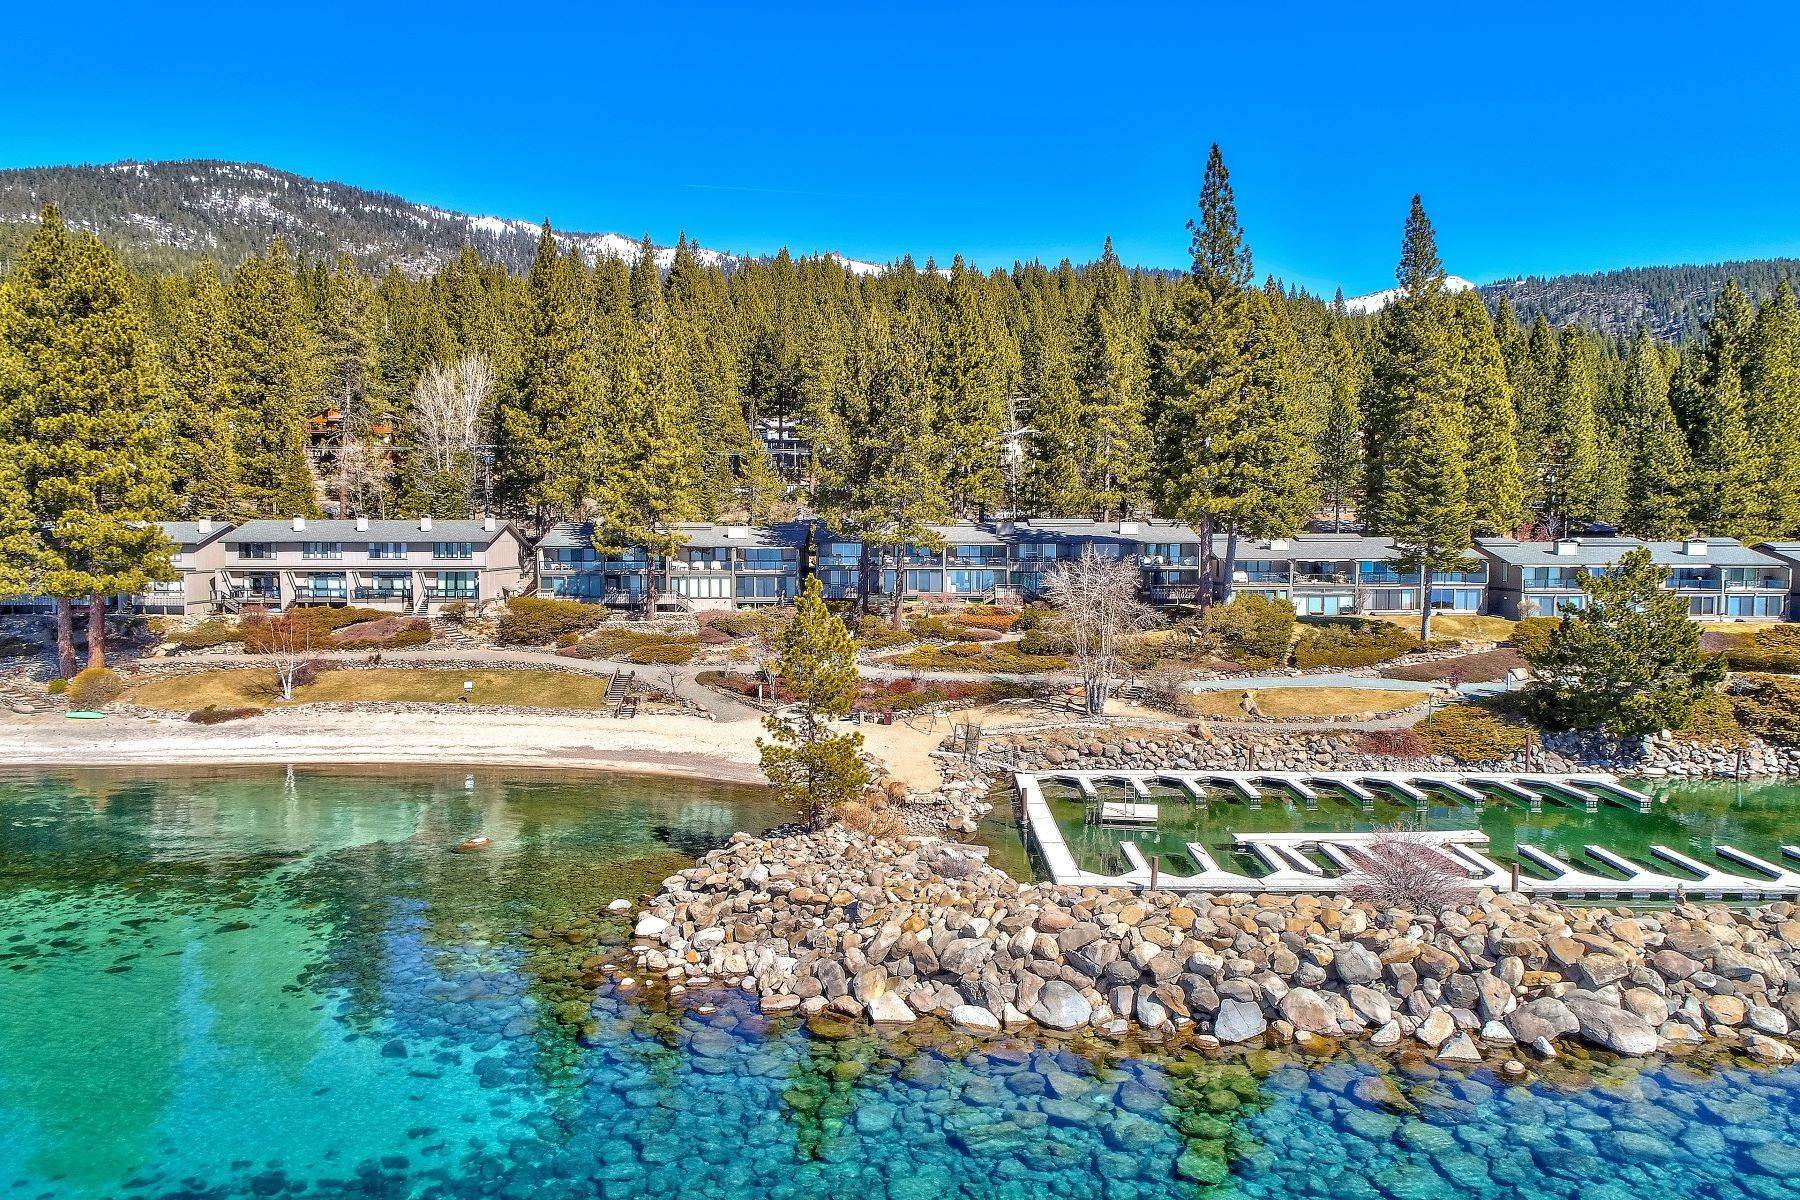 Property for Active at Lakefront property with Boat Marina 525 Lakeshore Blvd #48 Incline Village, Nevada 89451 United States